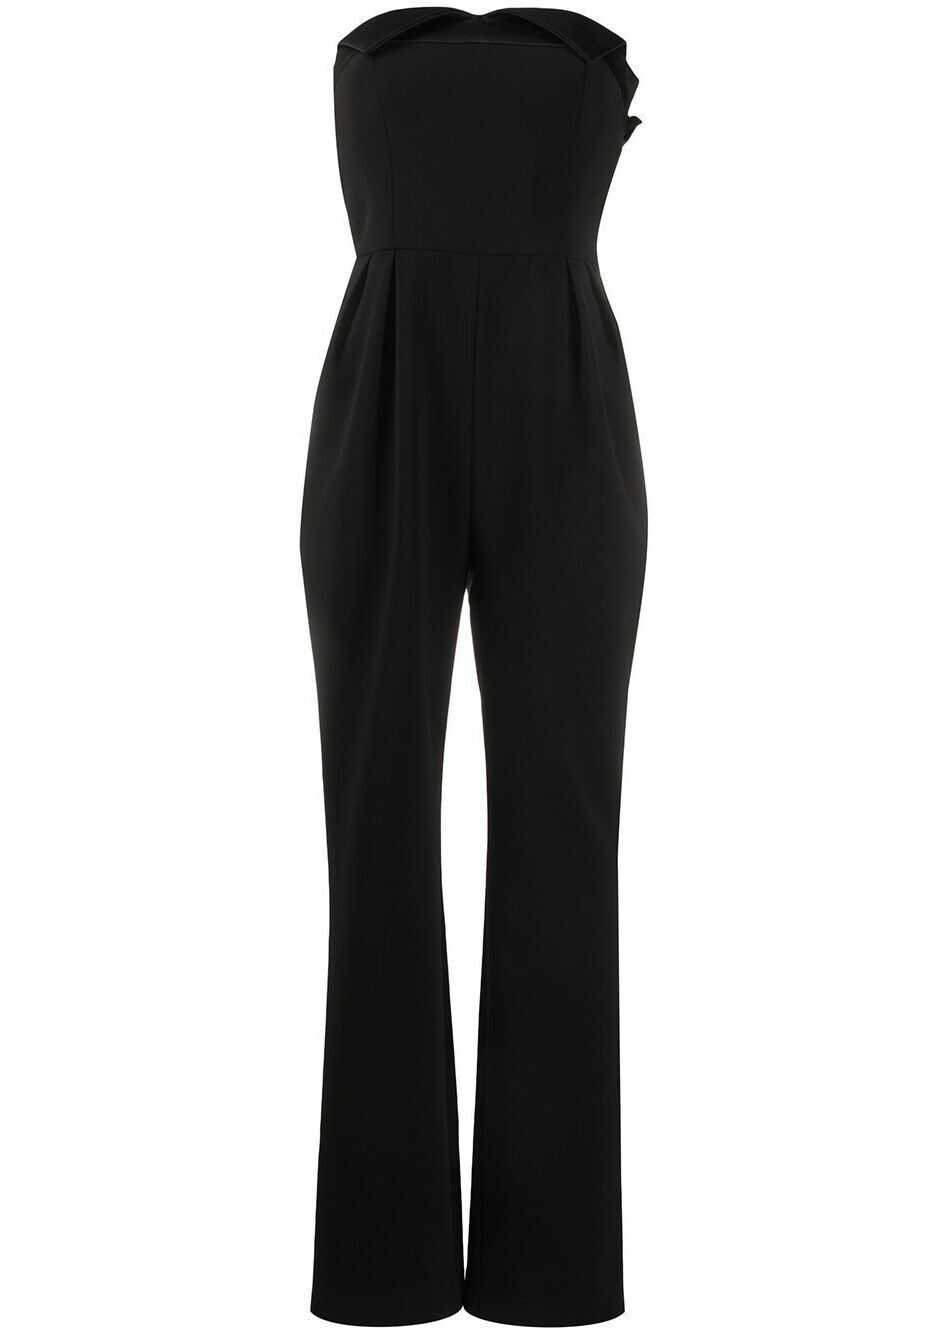 Moschino Polyester Jumpsuit BLACK